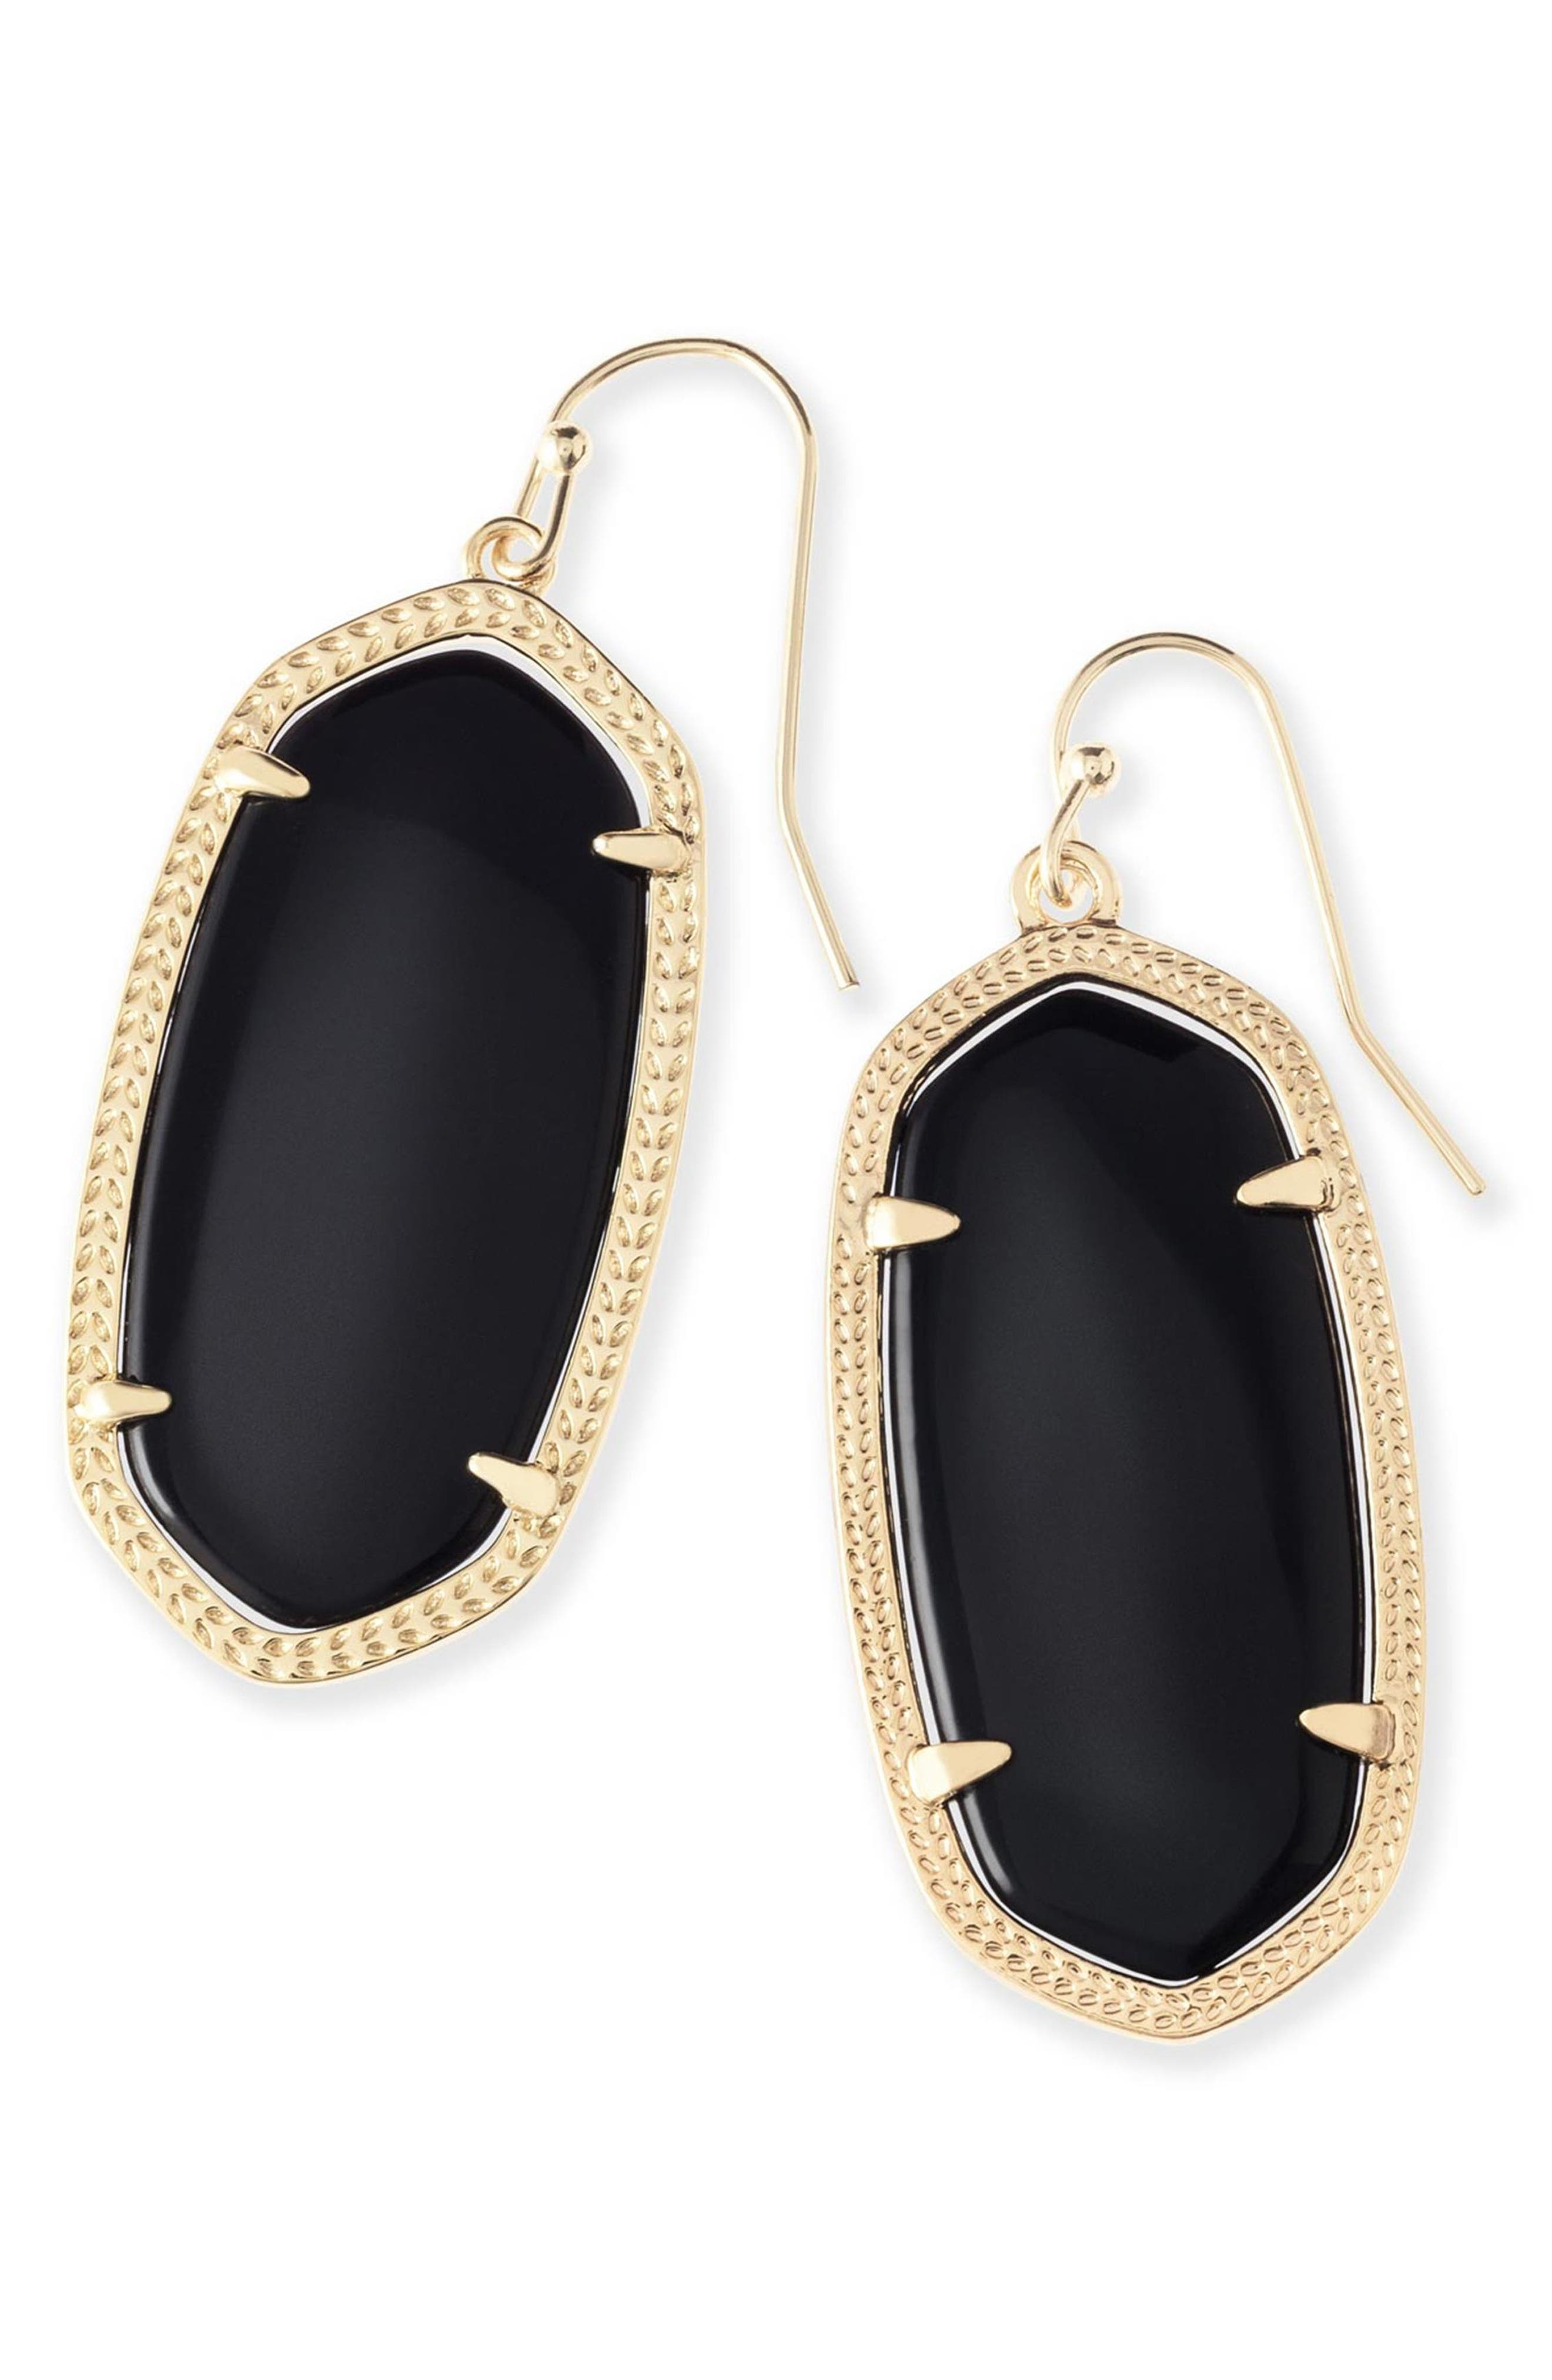 KENDRA SCOTT Elle Filigree Drop Earrings, Main, color, BLACK/ GOLD